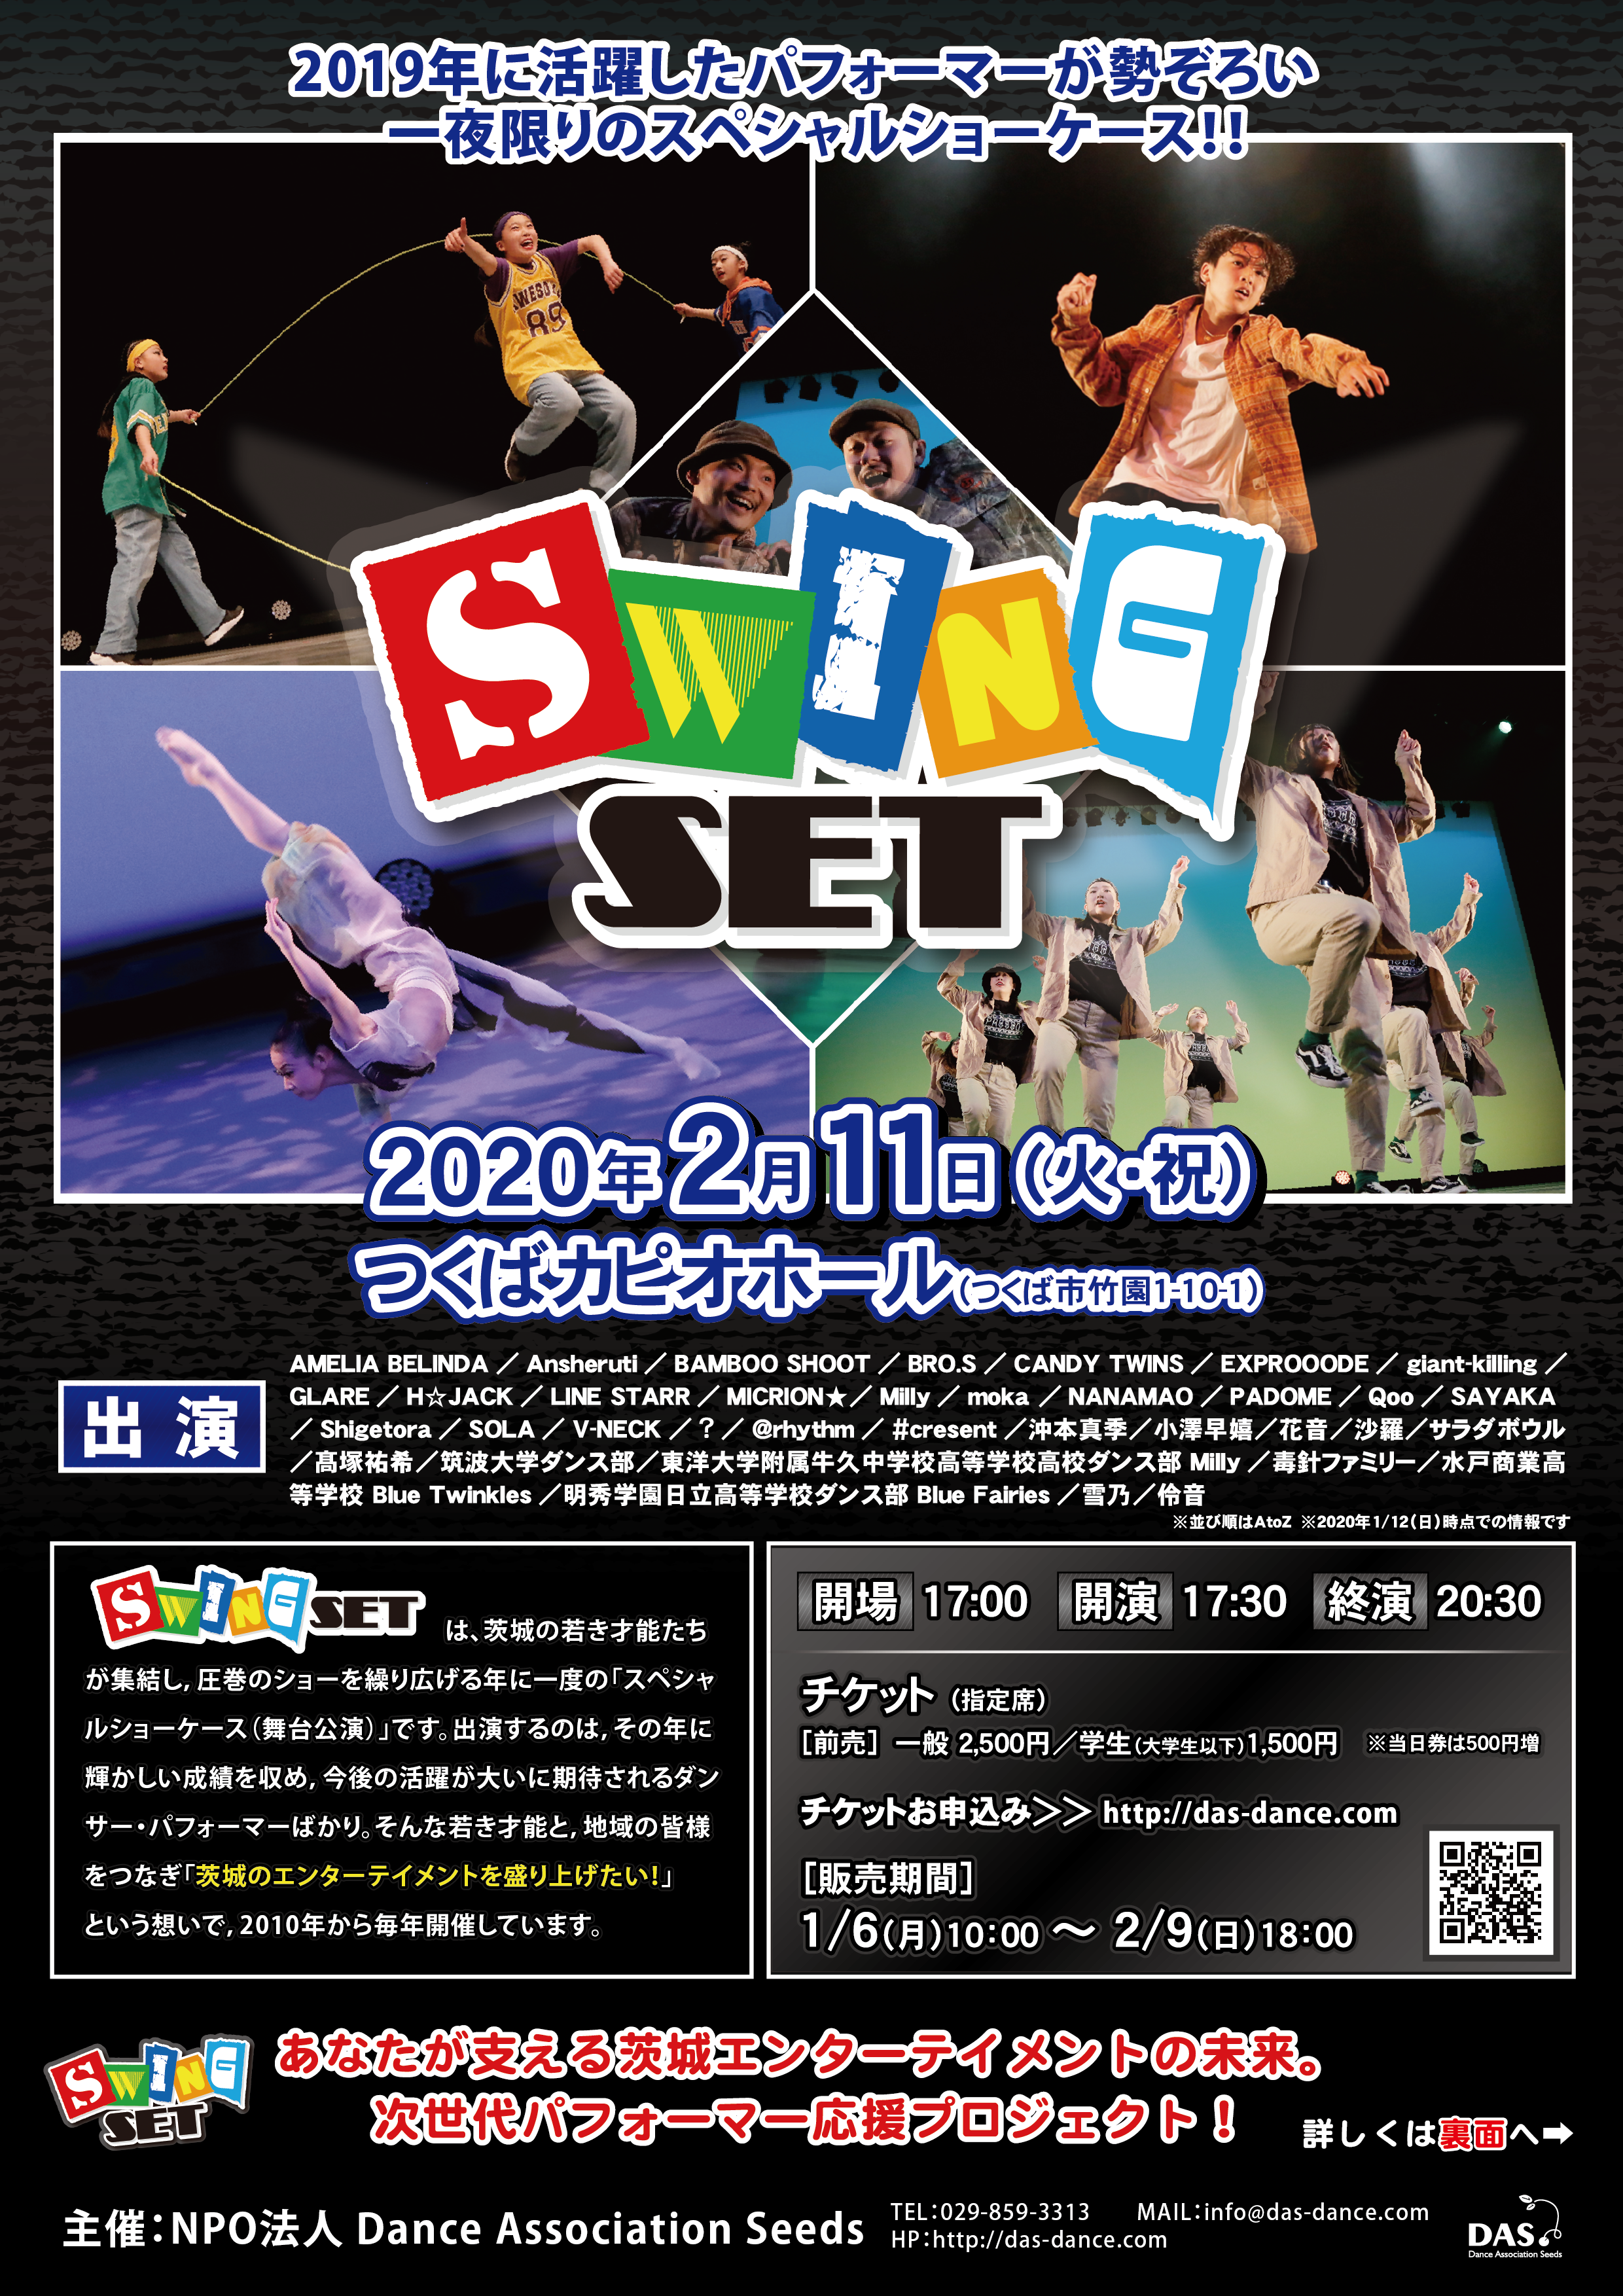 TPF2020_SWINGSET_omote_20200112-02.png